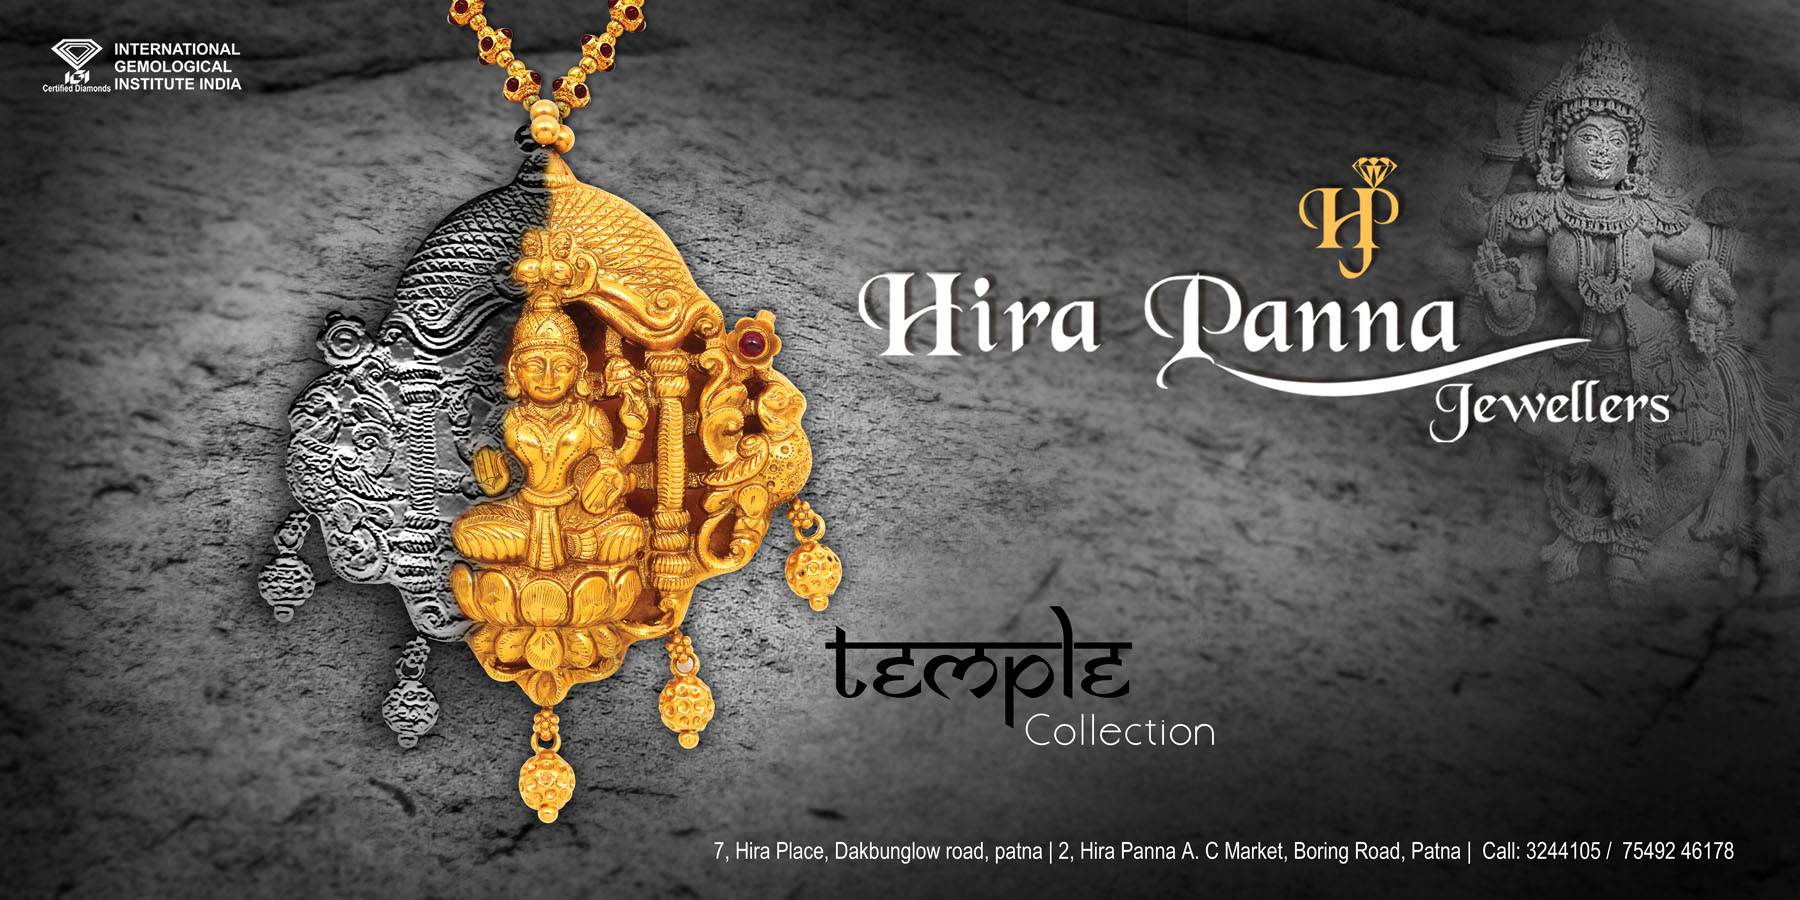 Posters for Hira Panna Jewellers